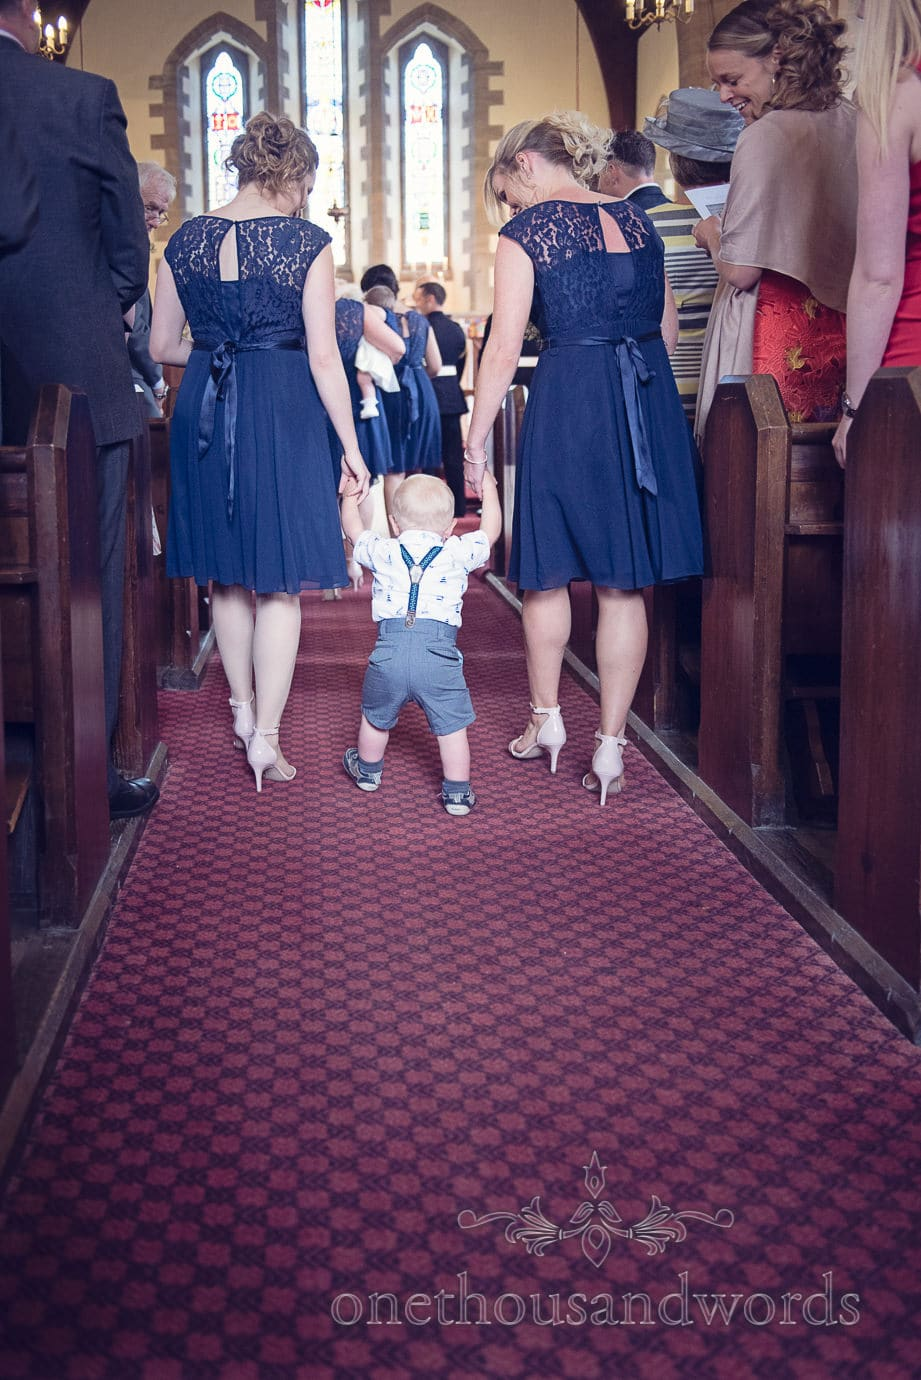 Bridesmaids in blue walk pageboy in braces up the aisle at Swanage Church wedding